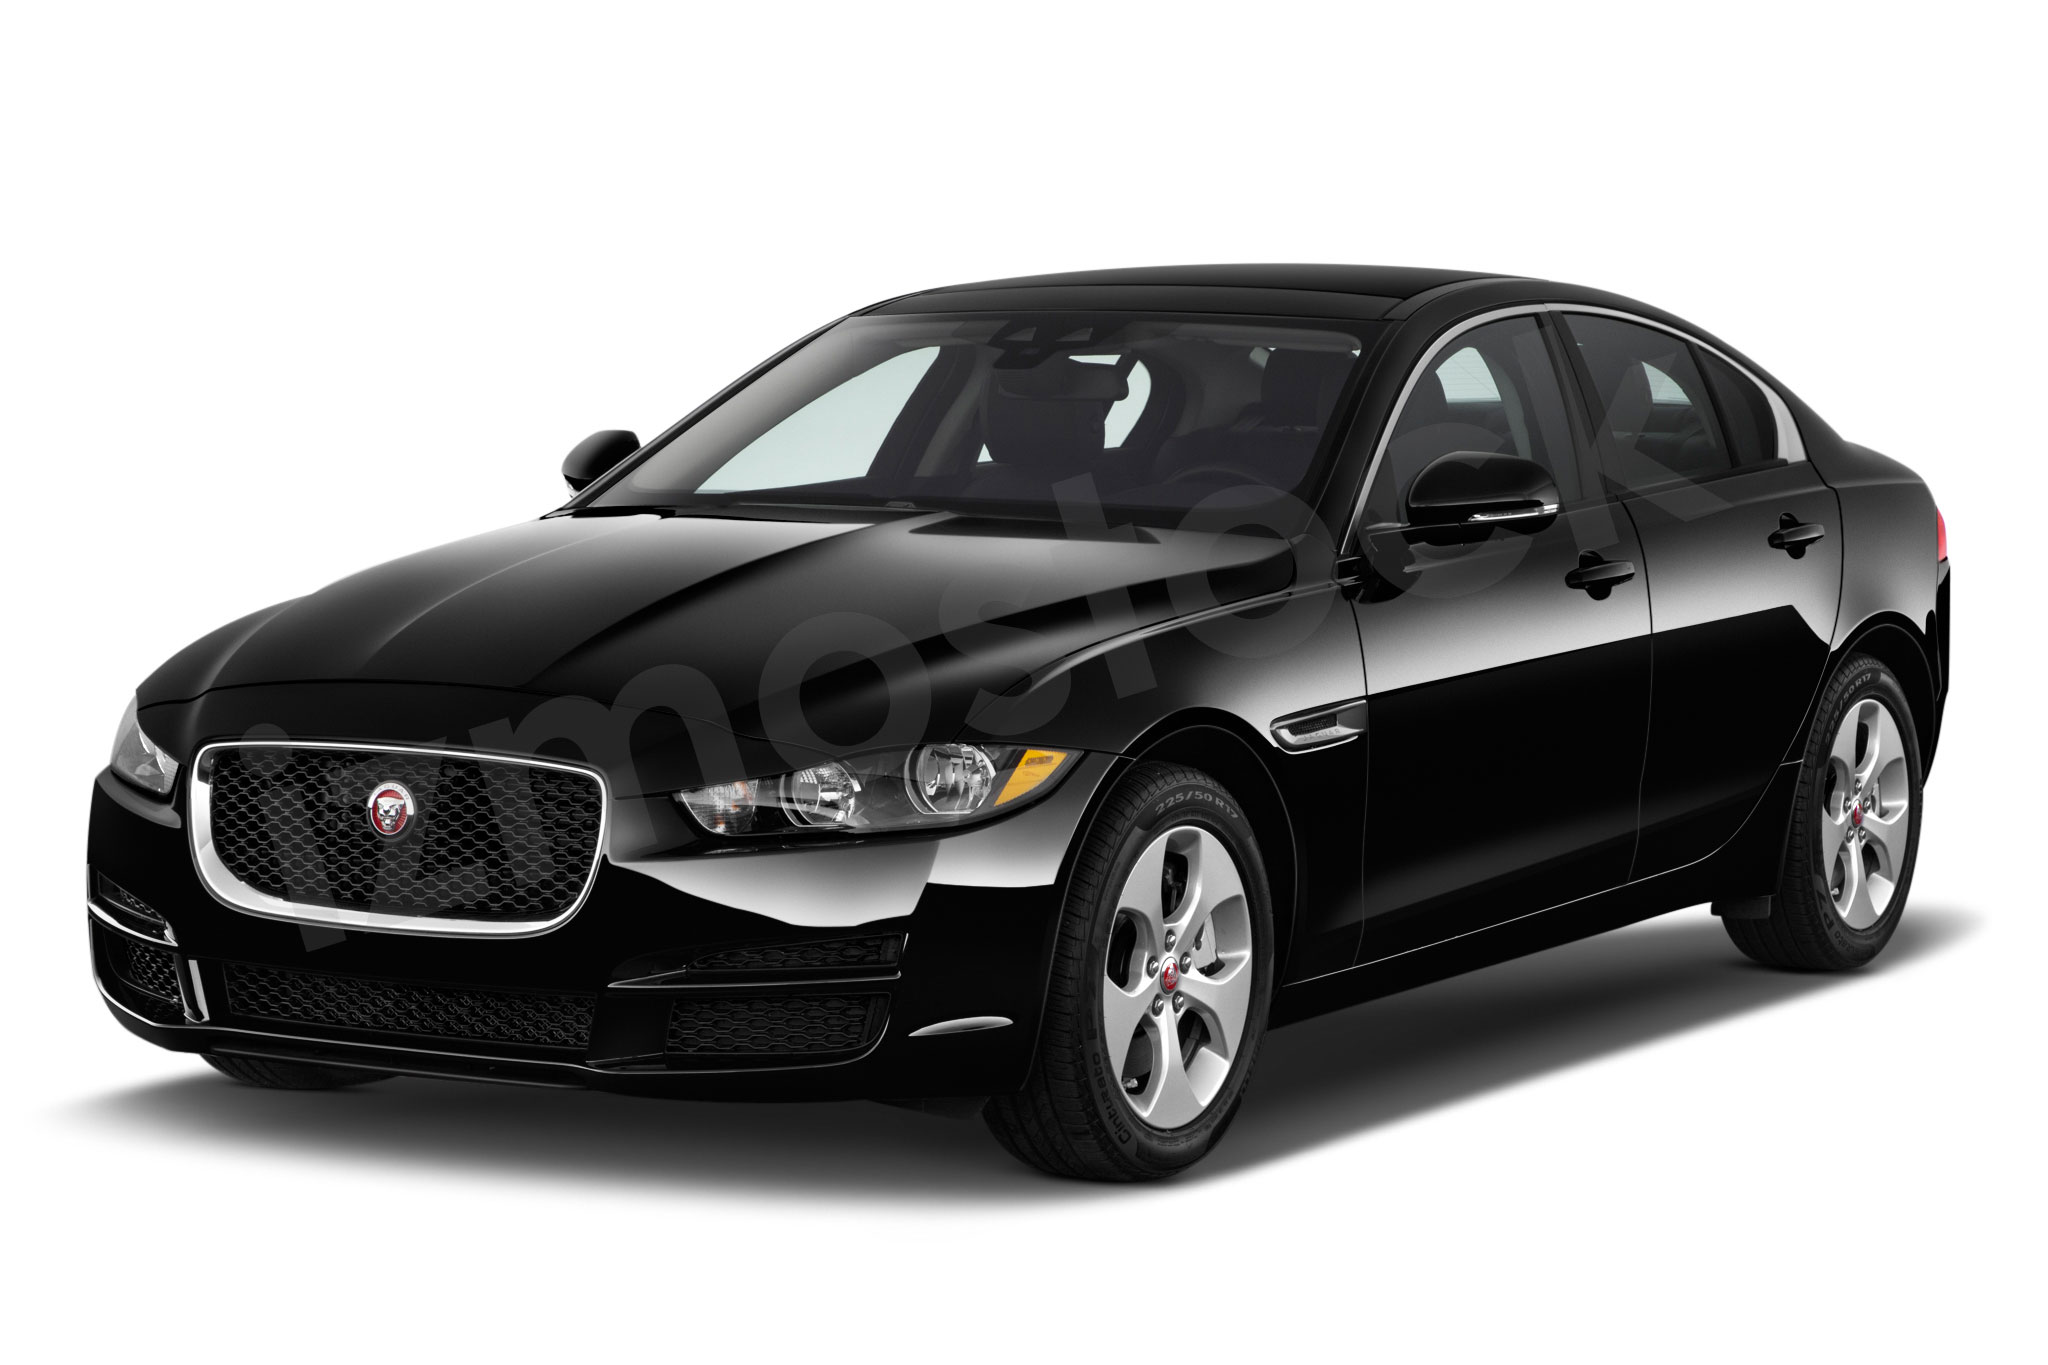 2017 Jaguar Xe Specs Review And Price >> 2017 Jaguar Xe Review Photos Price Interior Video And Specs